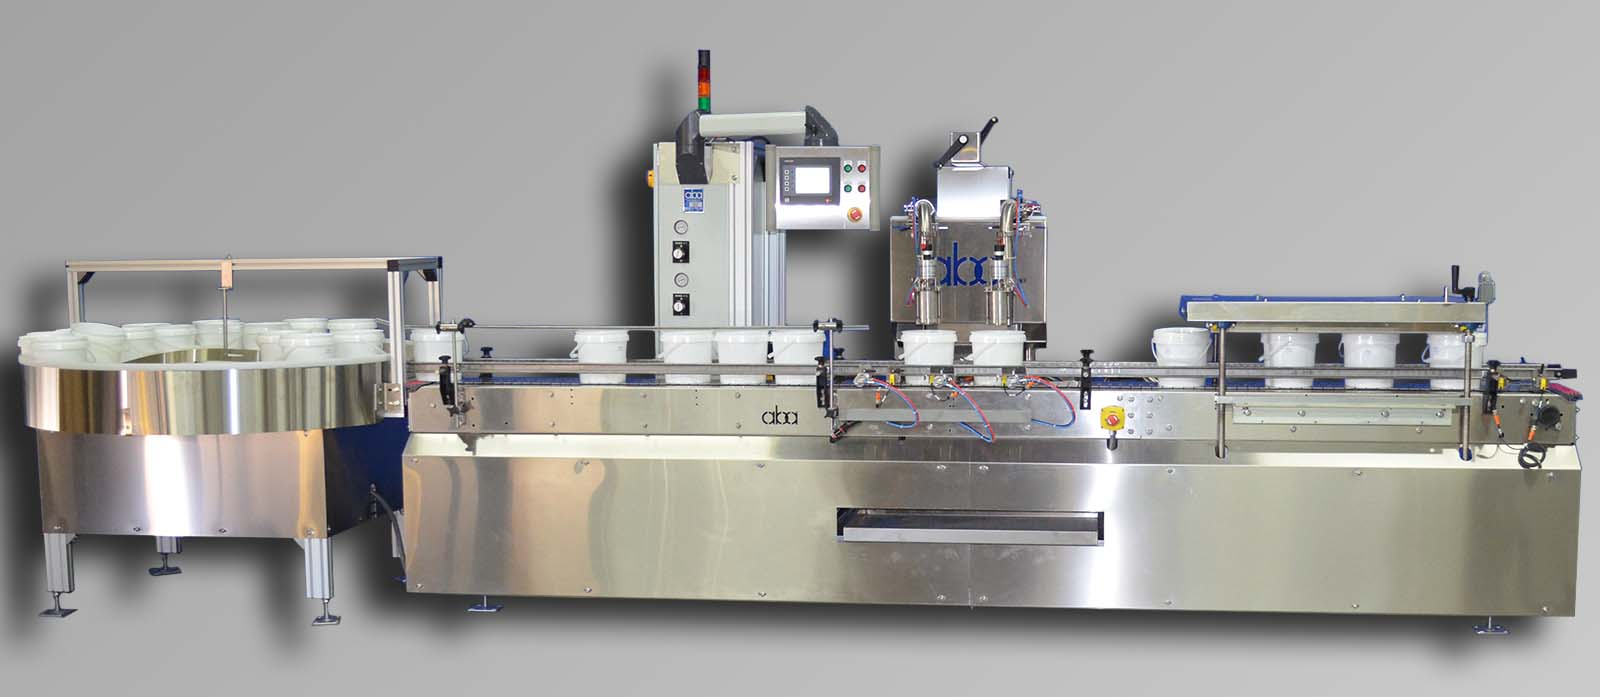 M327-2 top fill, 2 head volumetric machine with swing frame, rotary infeed table, and roller lid press